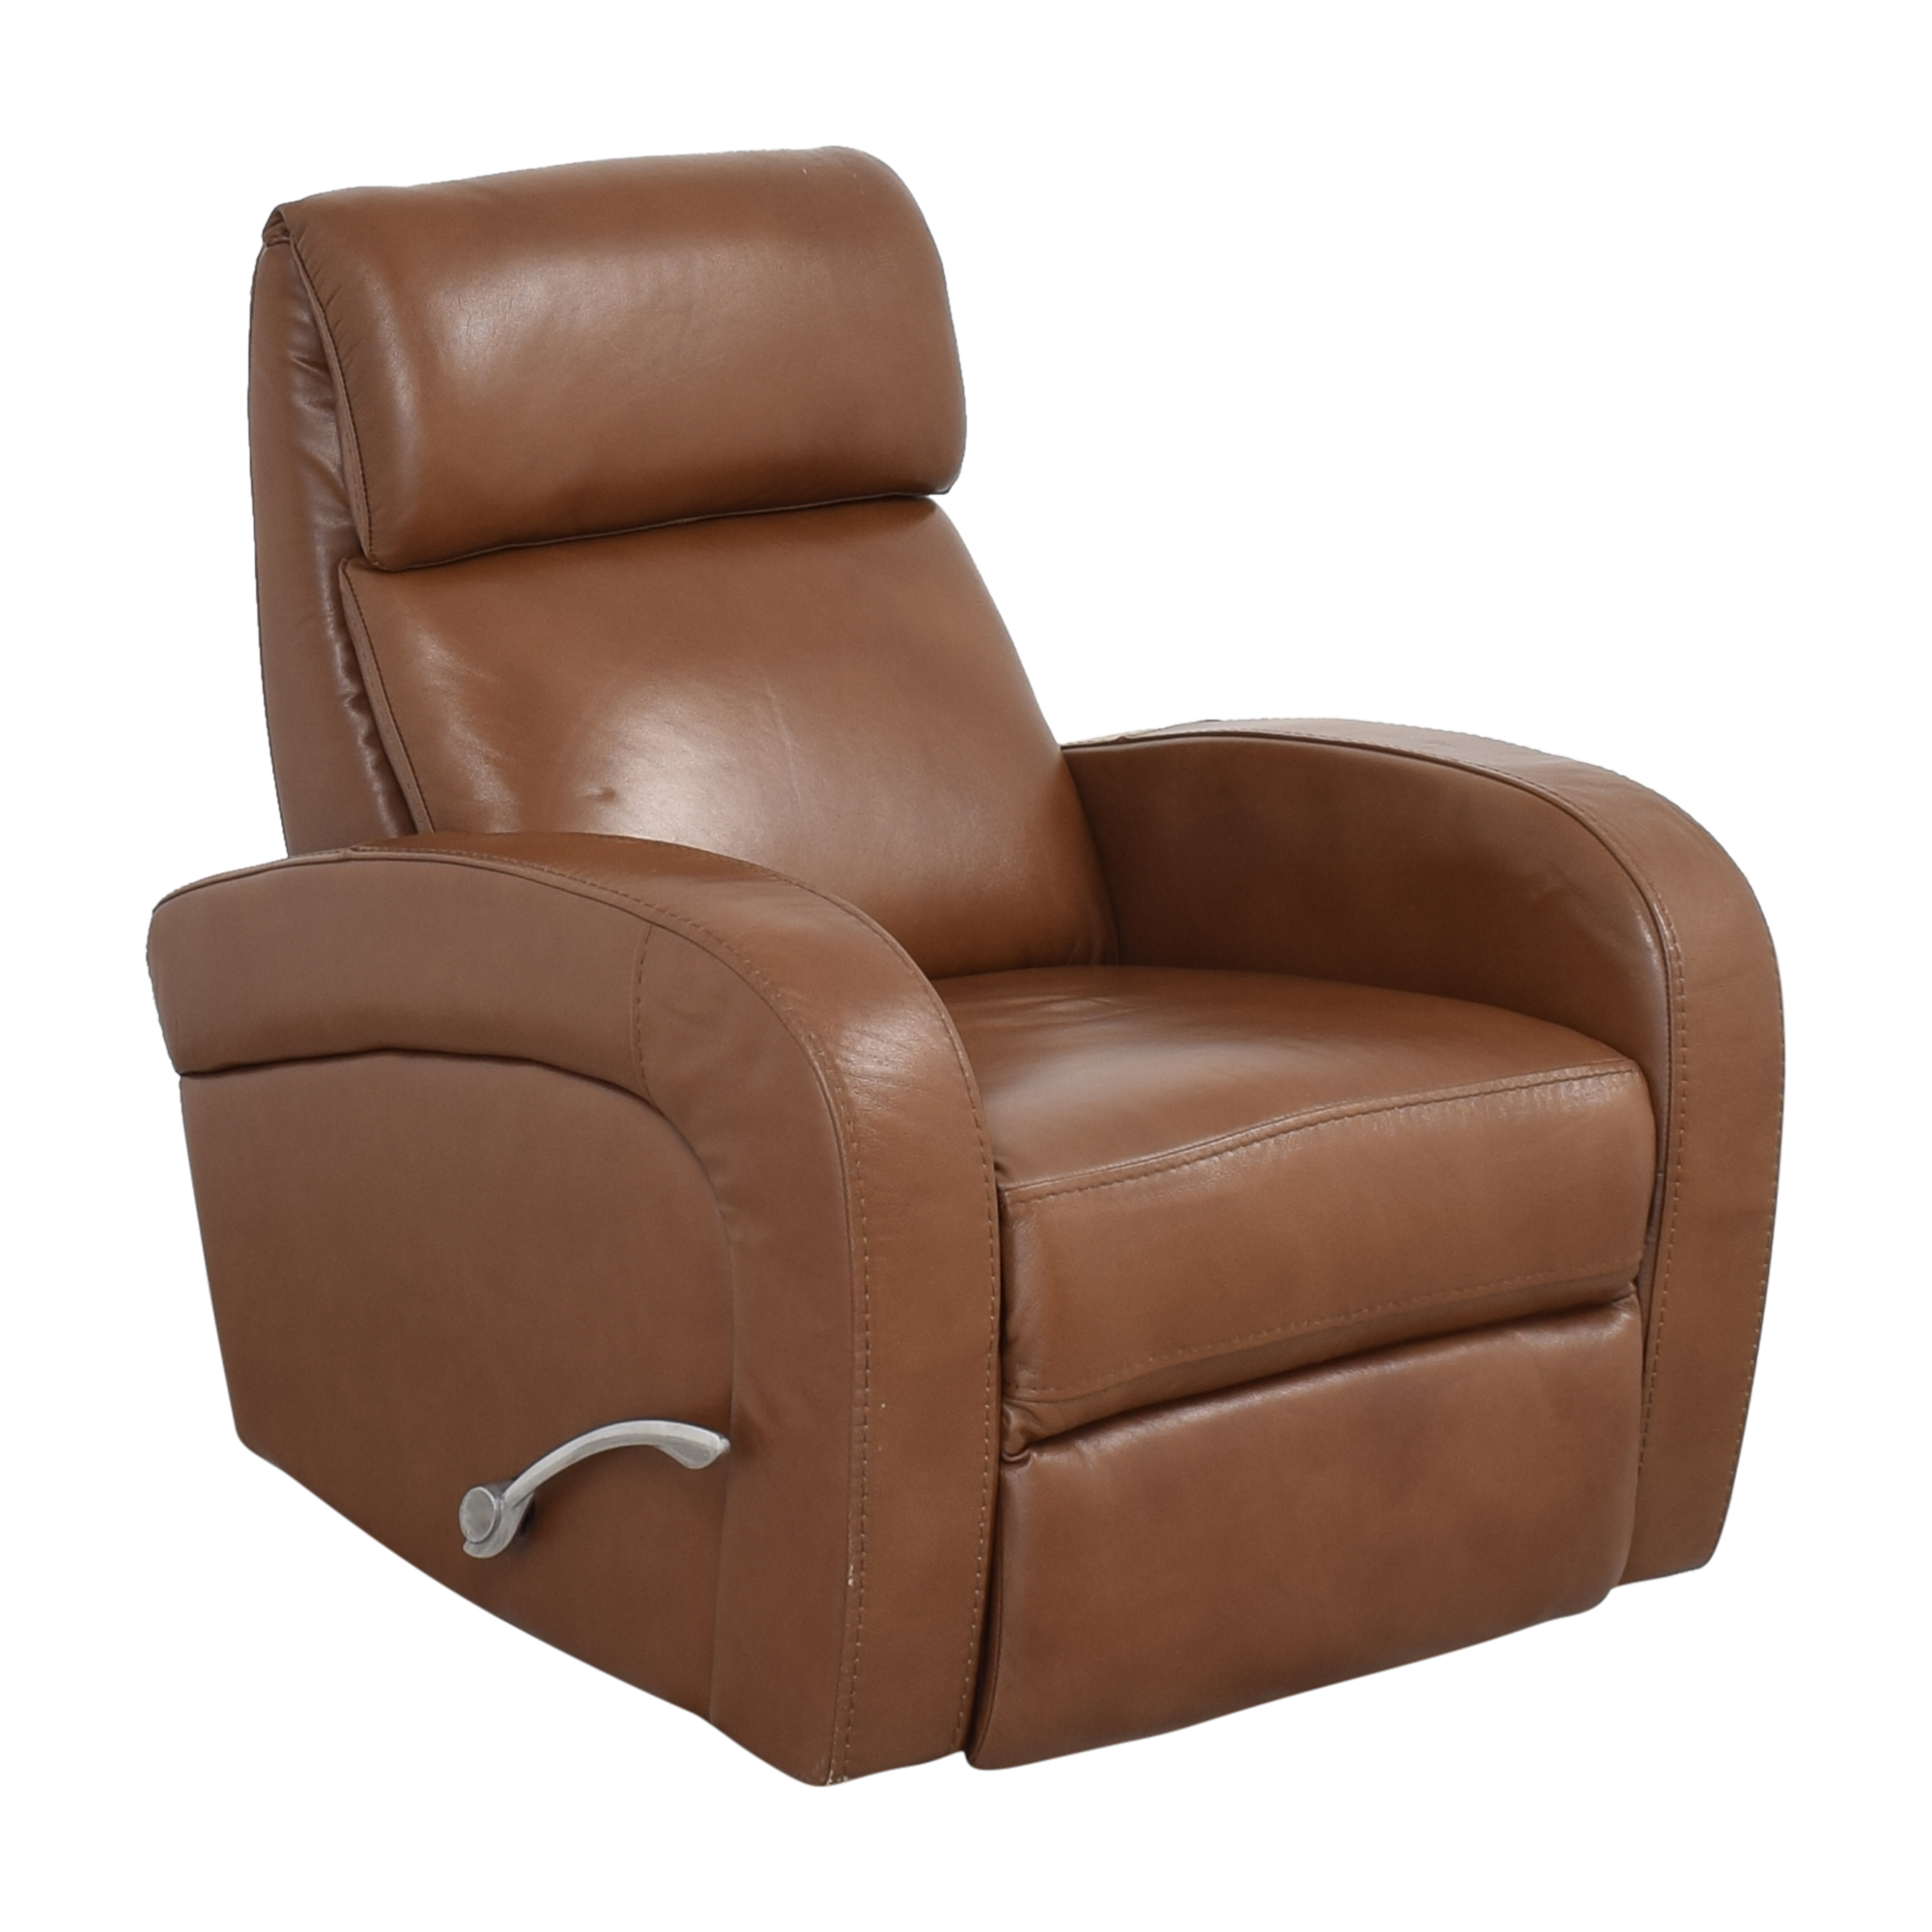 buy Manual Swivel Glider Recliner Macy's Recliners